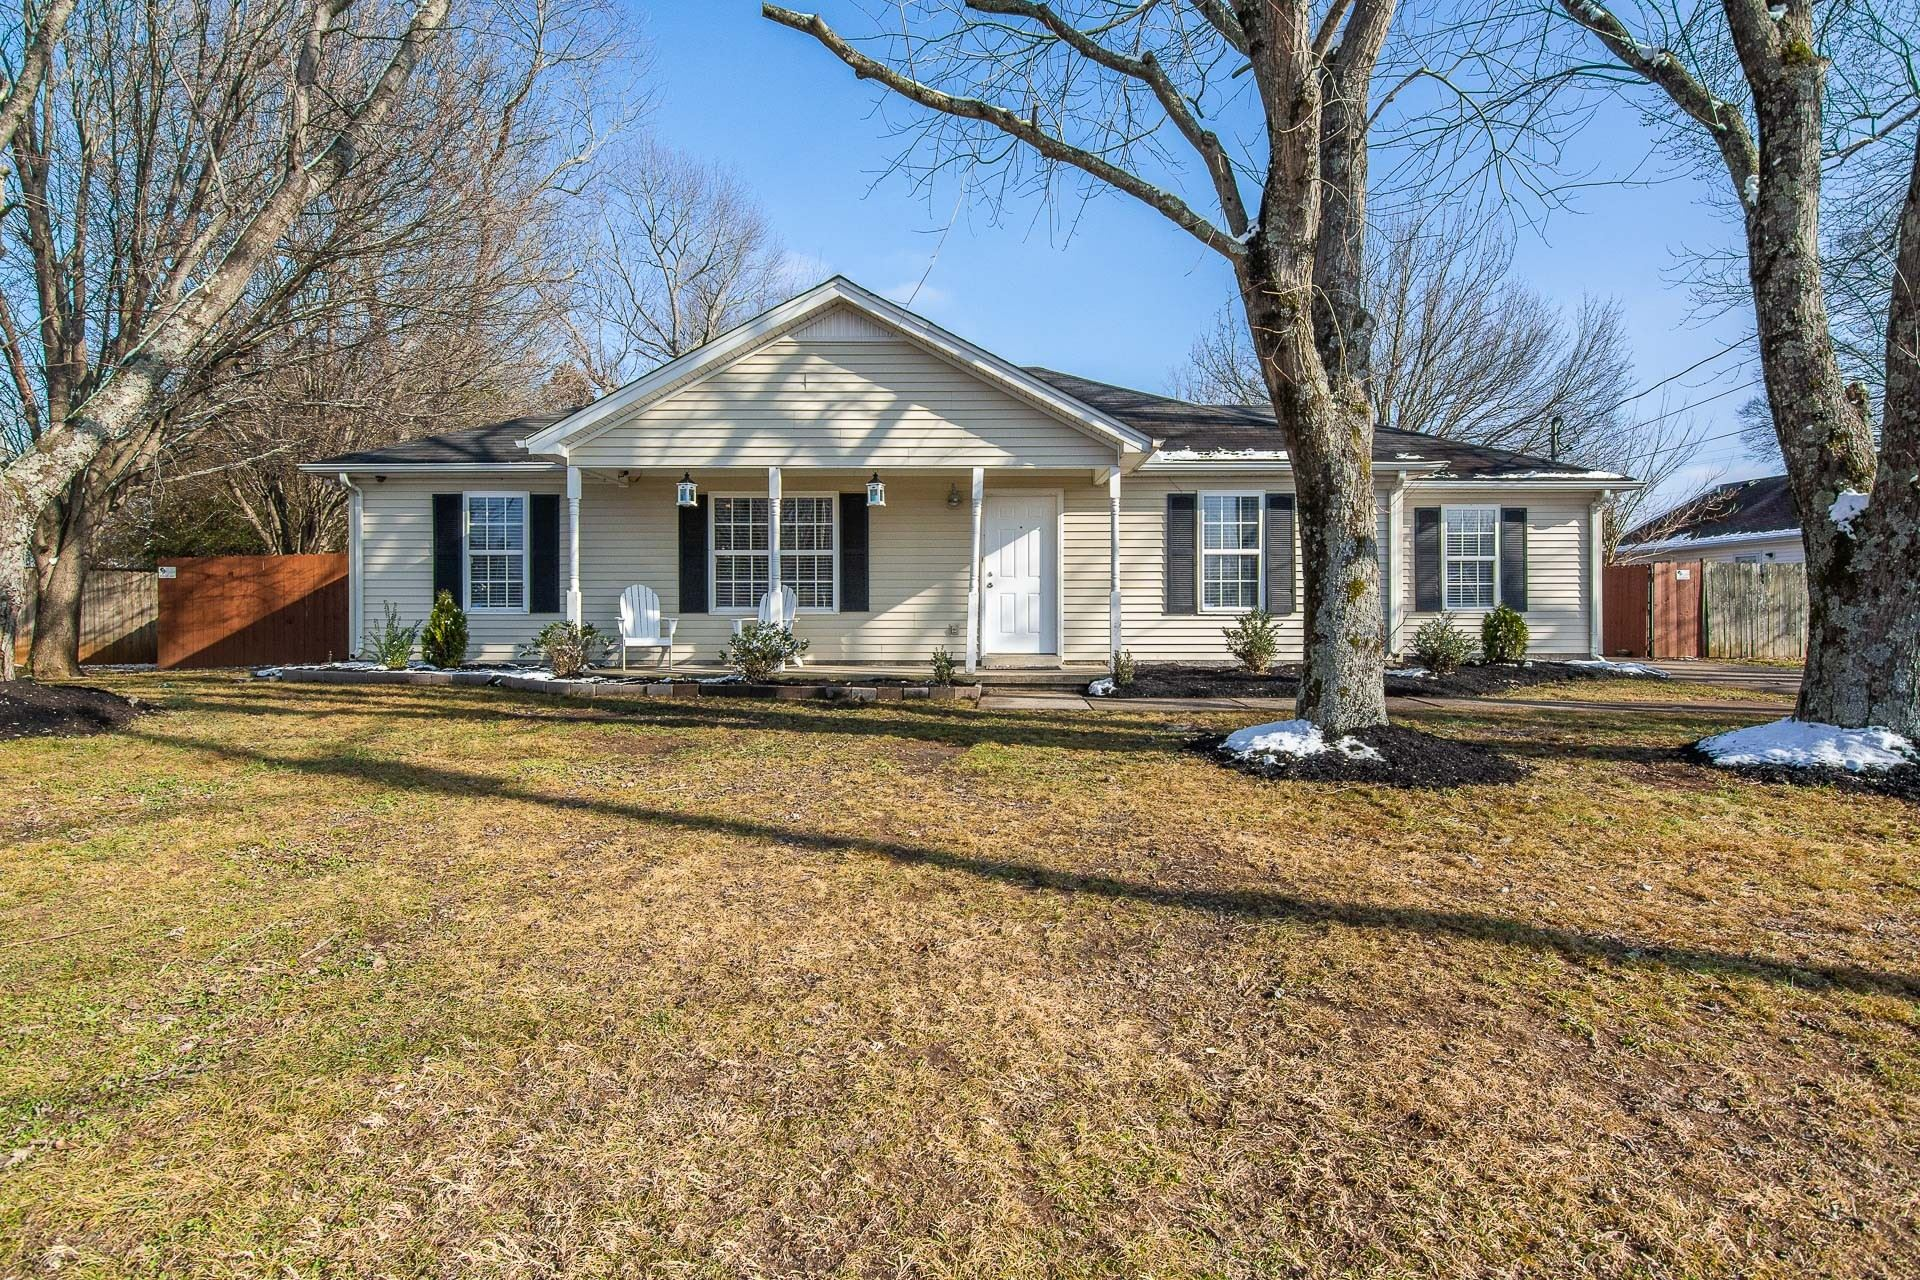 2013 Holbeach Dr, Murfreesboro, TN 37130 - MLS#: 2220068